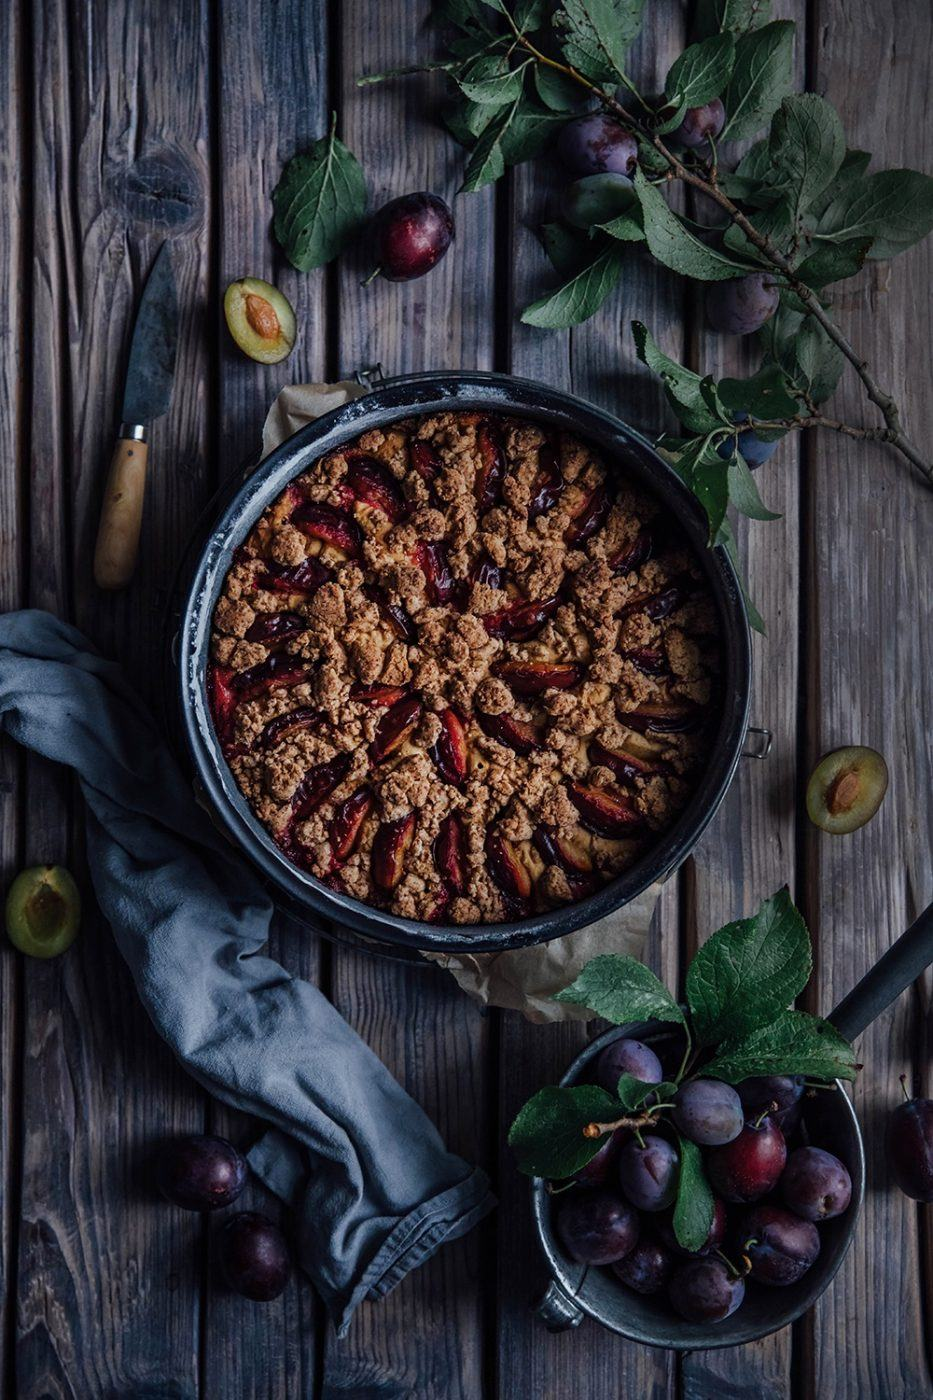 Image for Gluten-free Plum Crumb Cake with Coconut Blossom Sugar